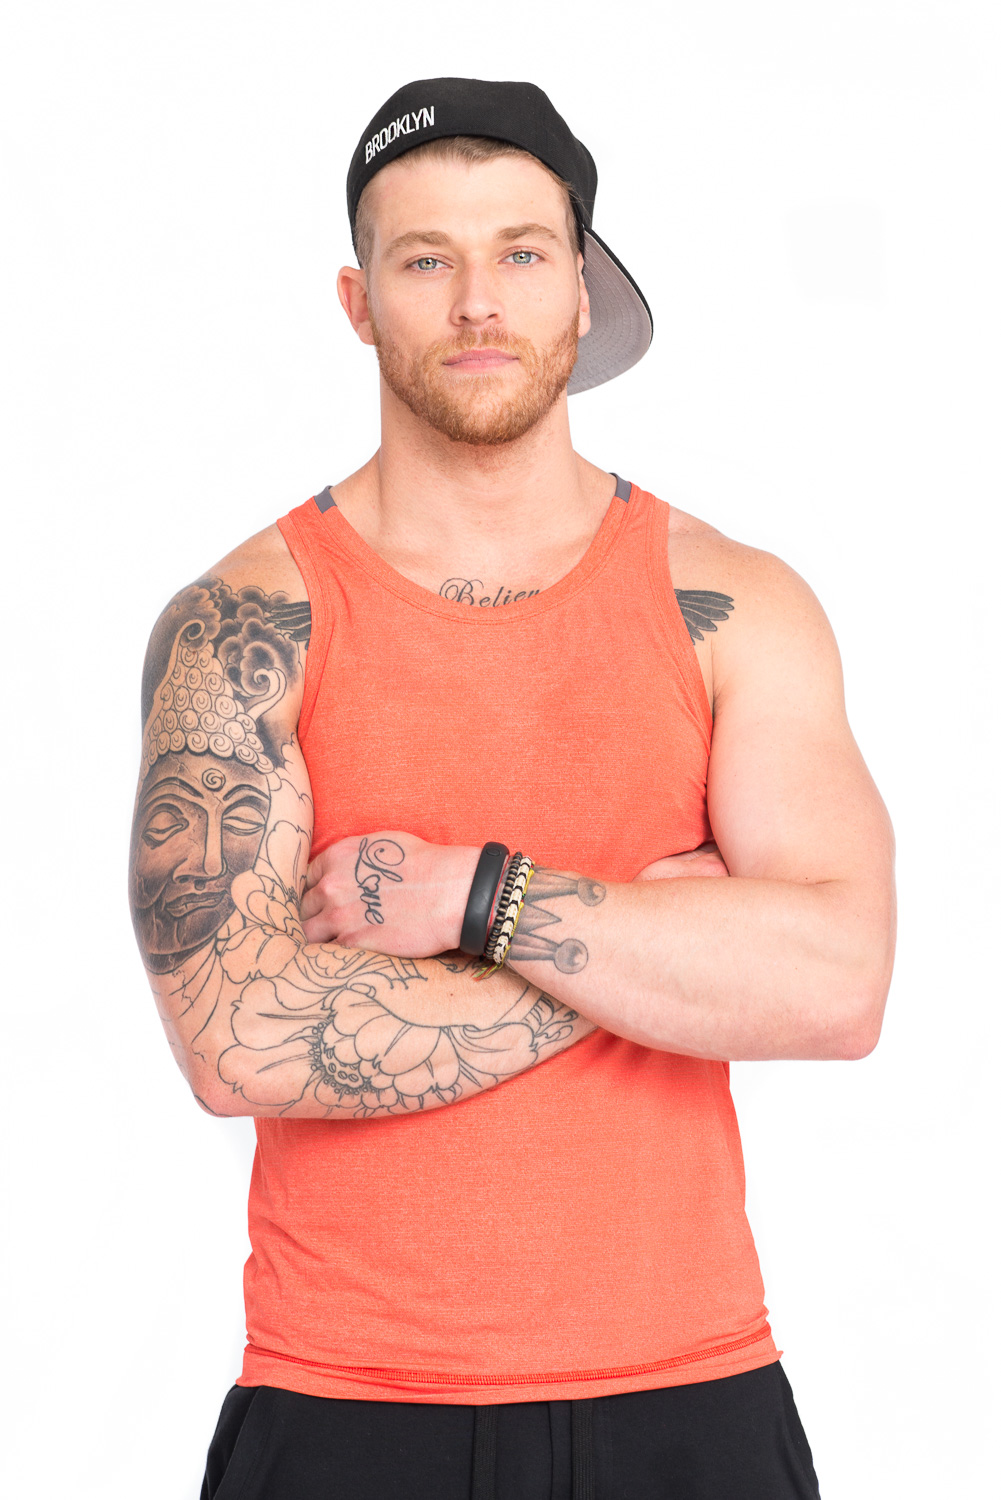 Amy Mayes Photography Man with Tattoos White Background.jpg